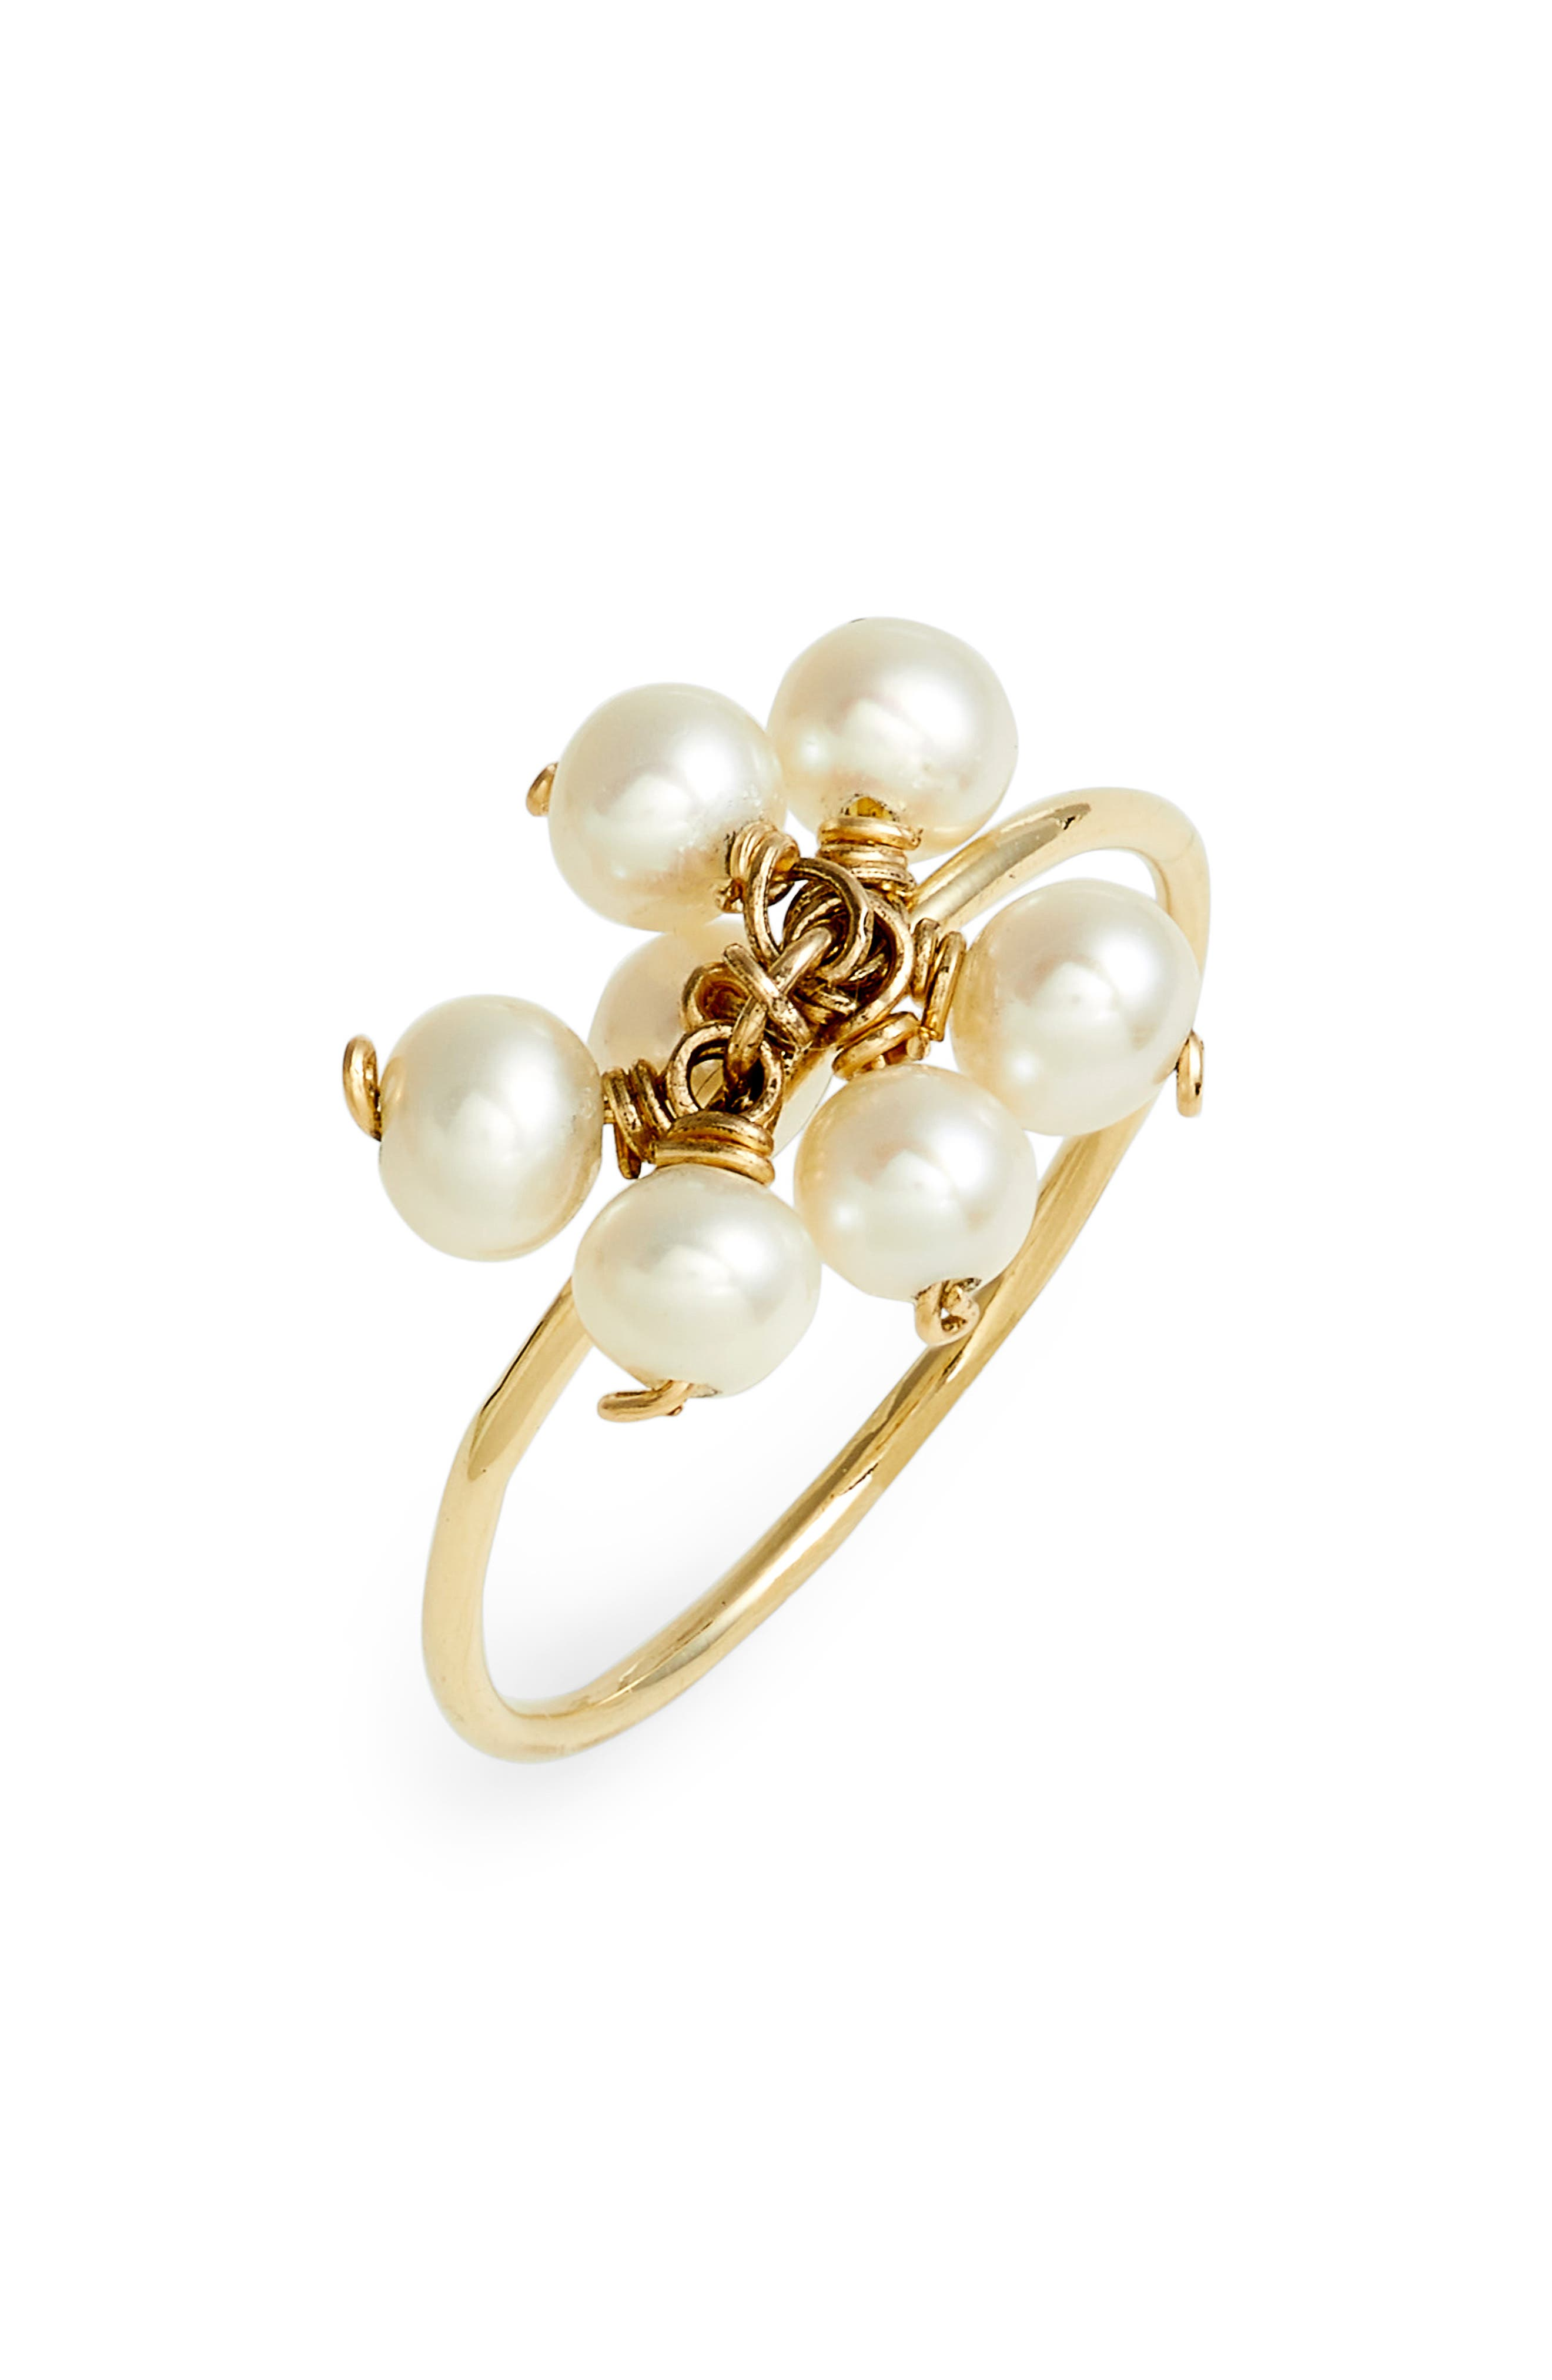 Baby Pearl Cluster Ring,                         Main,                         color, YELLOW GOLD/ WHITE PEARL